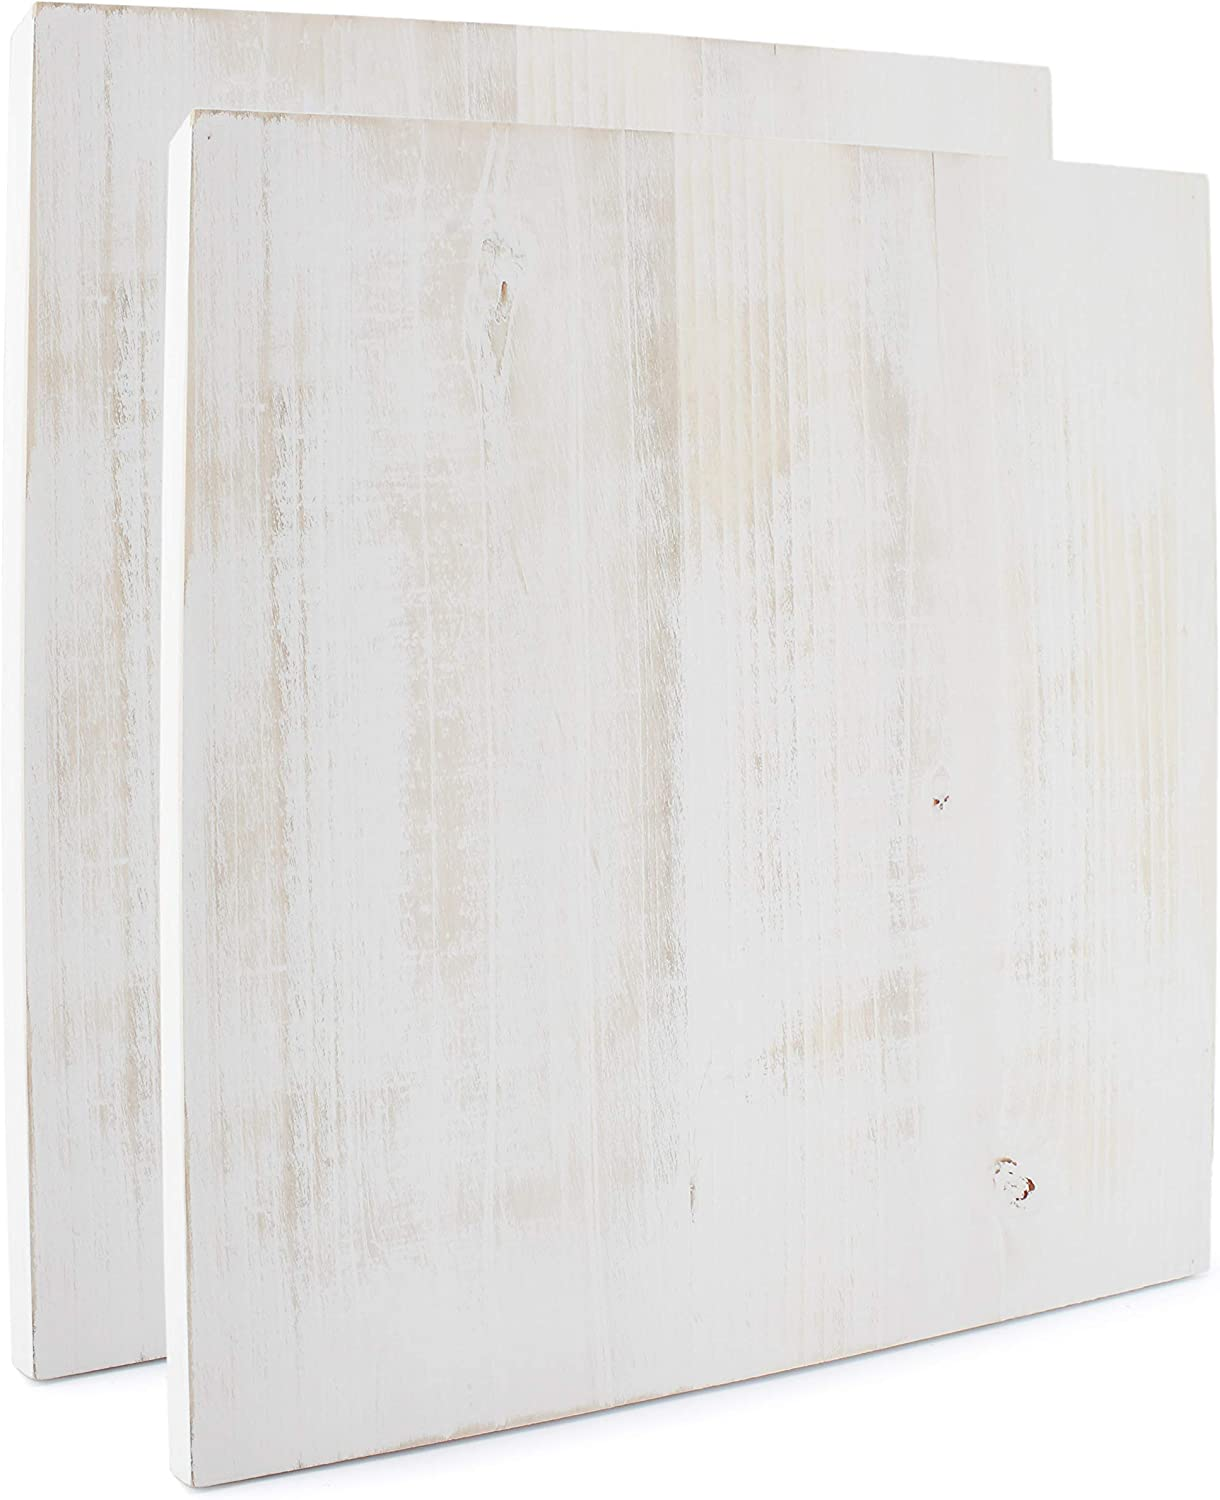 Darware Blank Wood Plaques (2-Pack, Whitewashed), White Wooden Signs for DIY Crafts 12x12 Inch